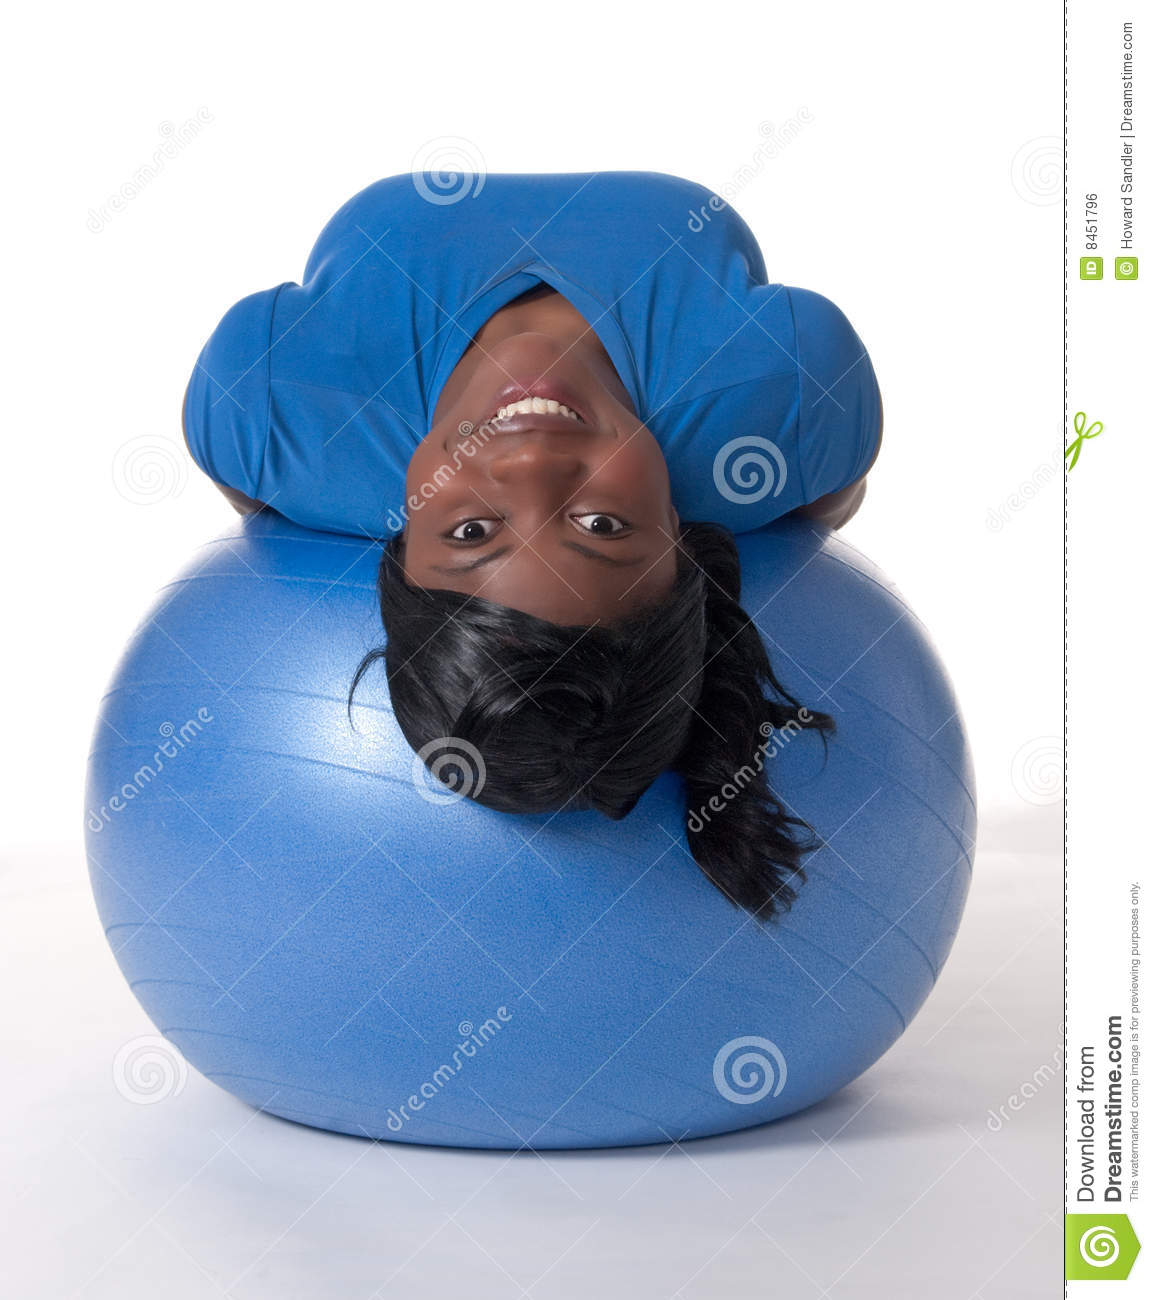 Smiling woman on exercise ball